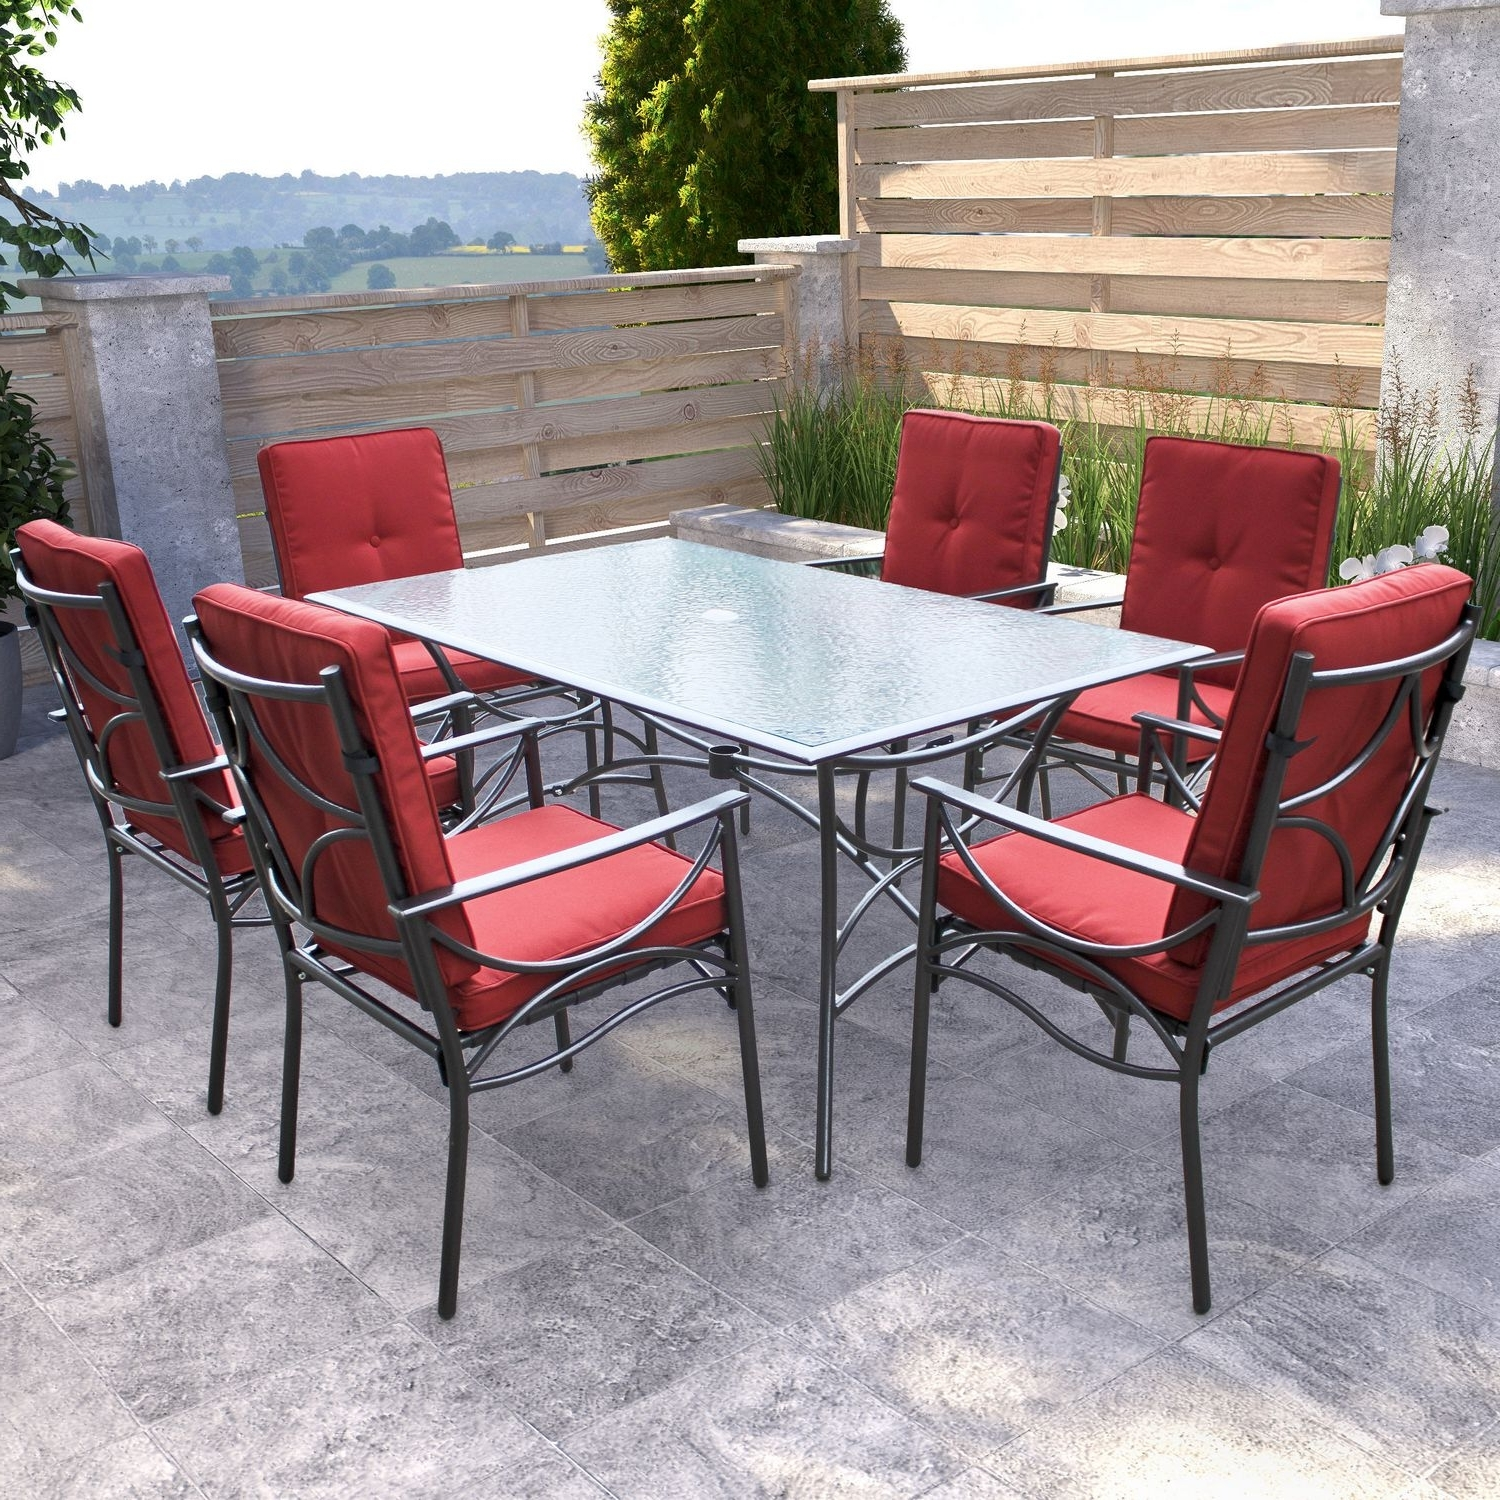 Current Patio Conversation Sets With Dining Table Regarding Furniture: Exciting Outdoor Dining Furniture Sets With Glass Top (View 5 of 20)